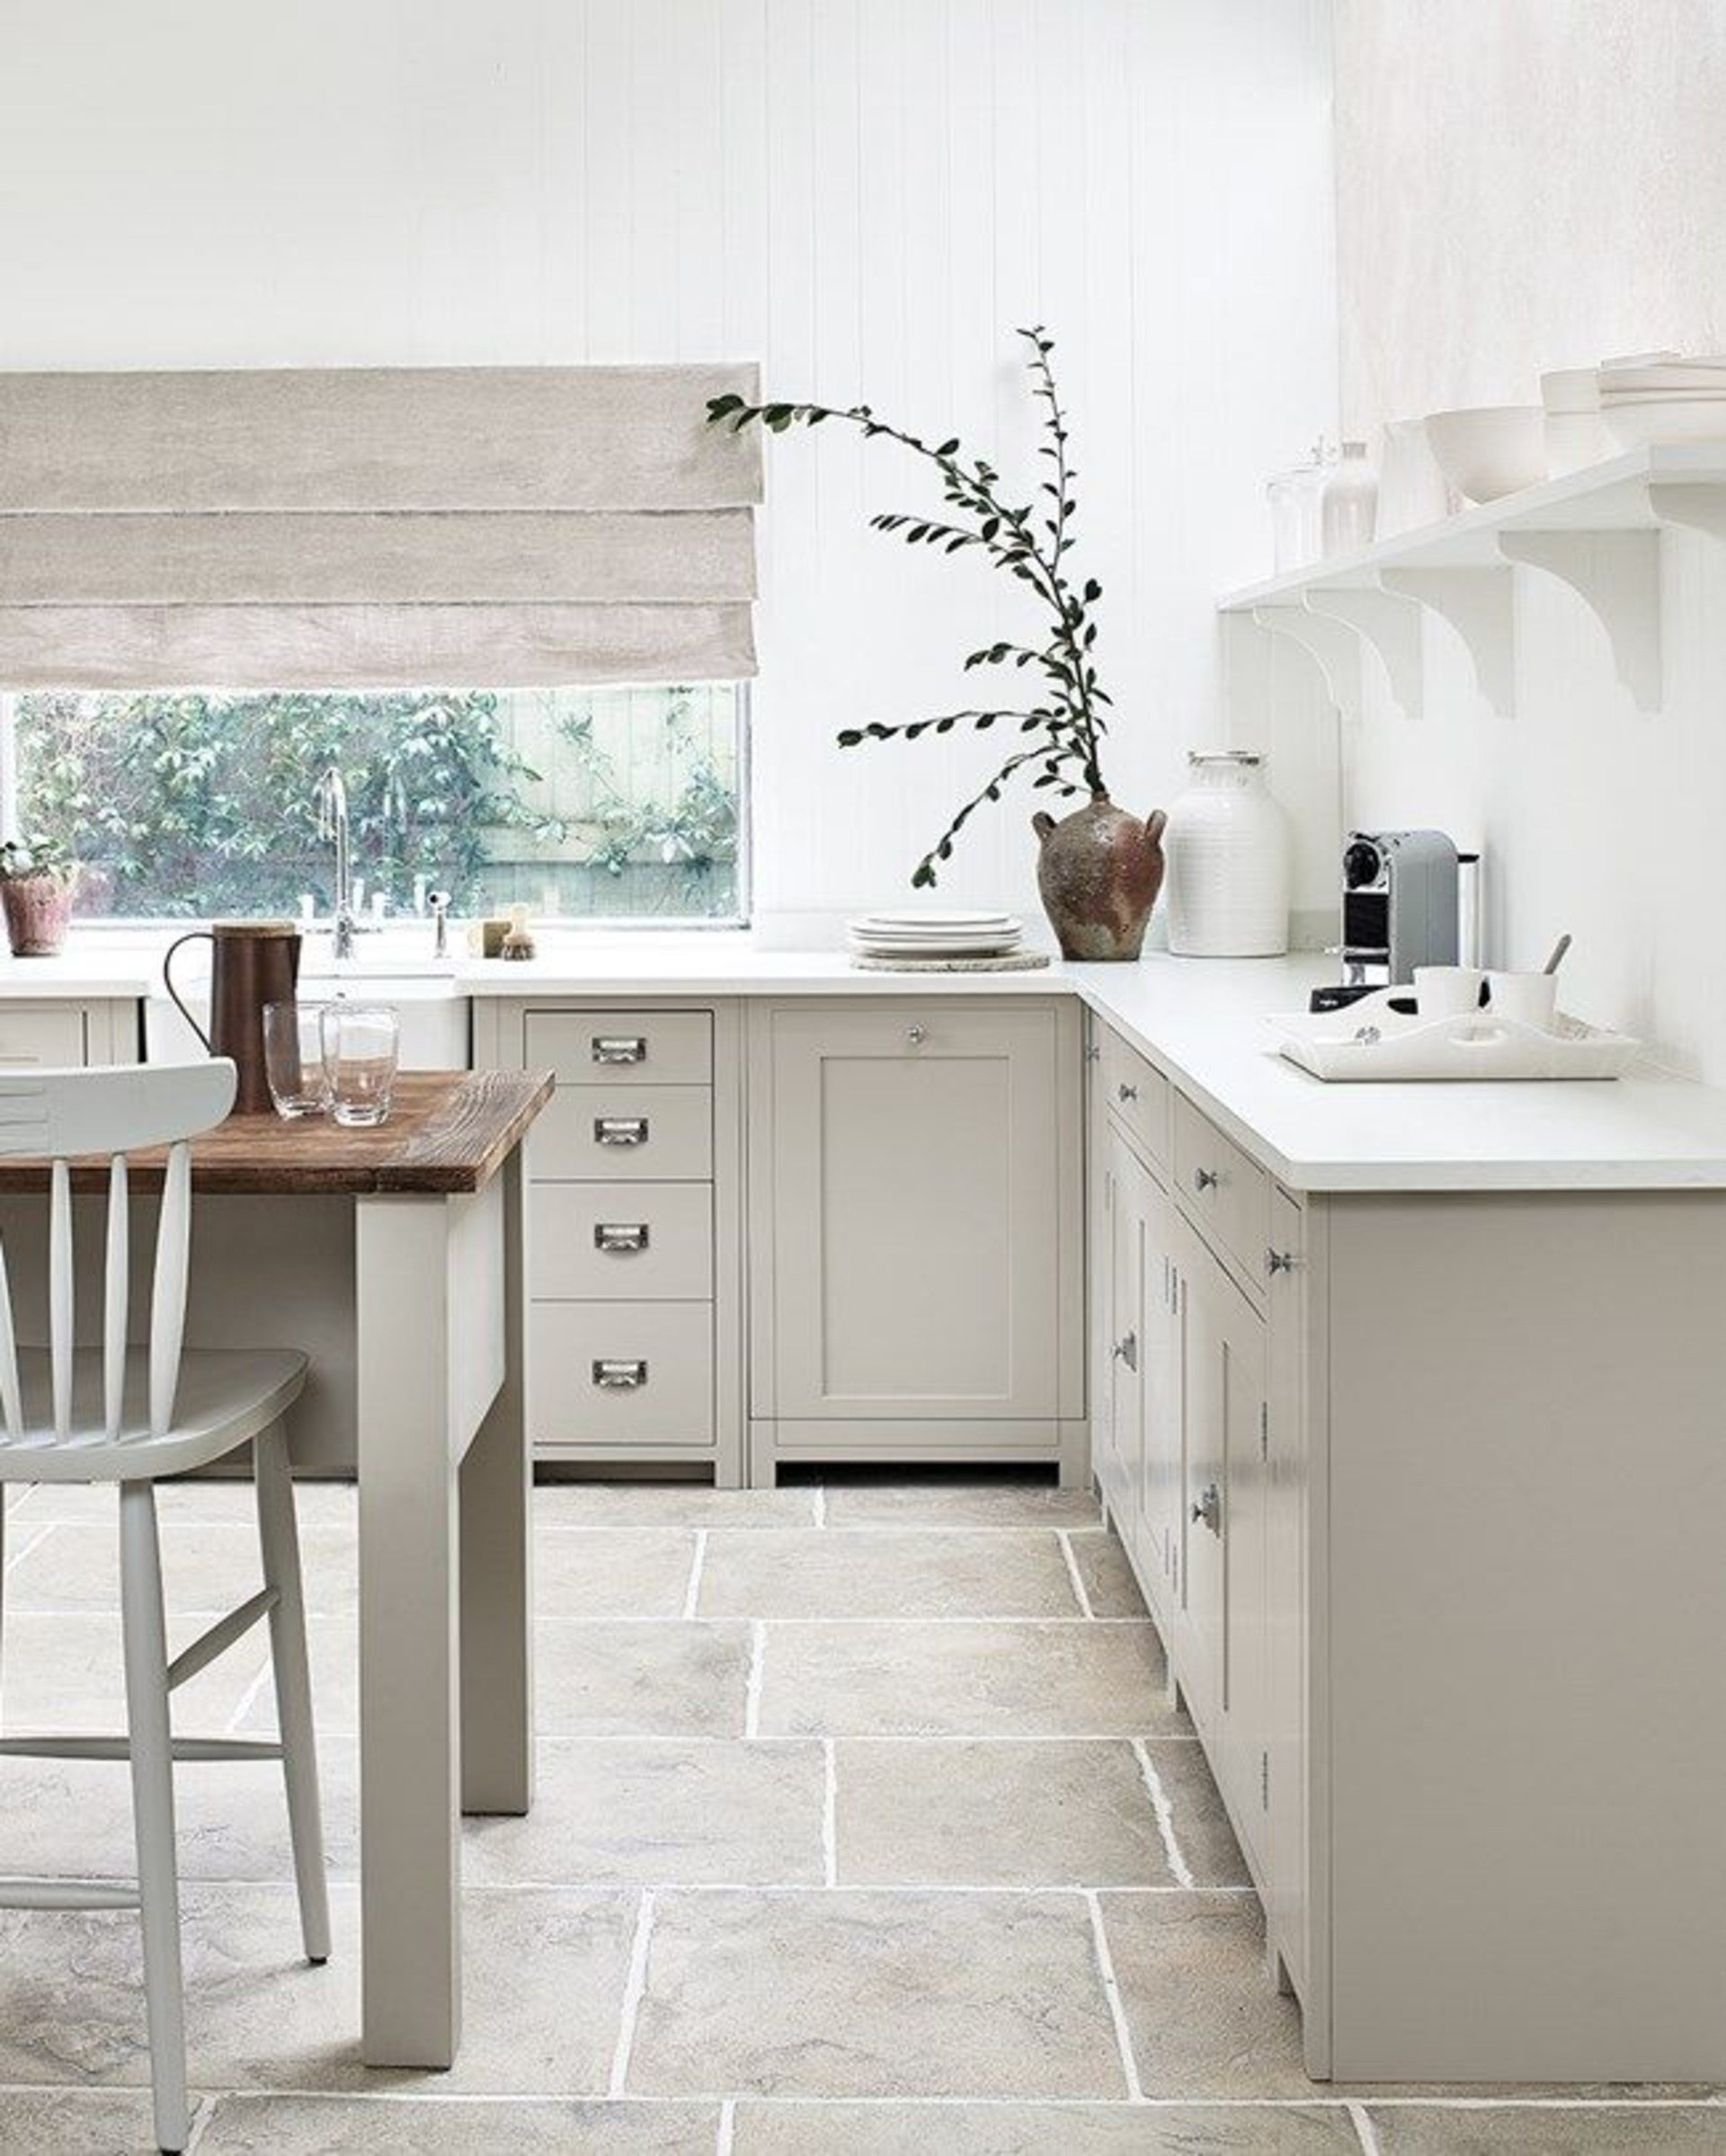 8 Easy Ways To Update Your Kitchen Cabinets Bobby Berk